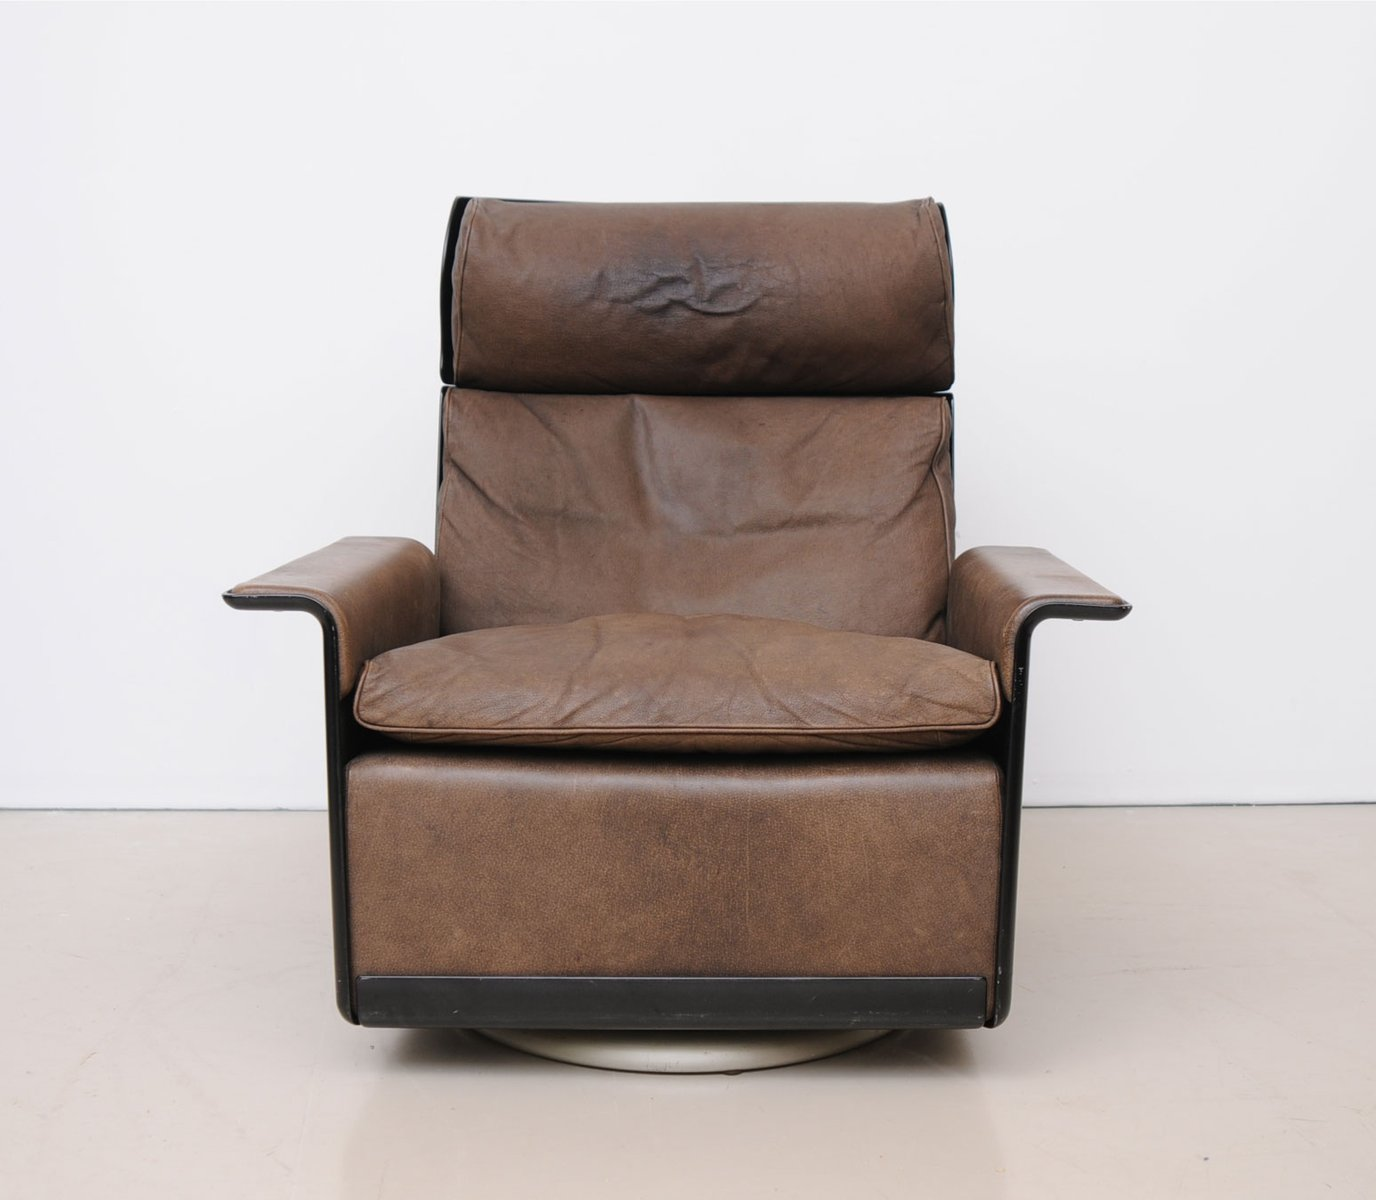 Mid century 620 high back armchair by dieter rams for vitsoe